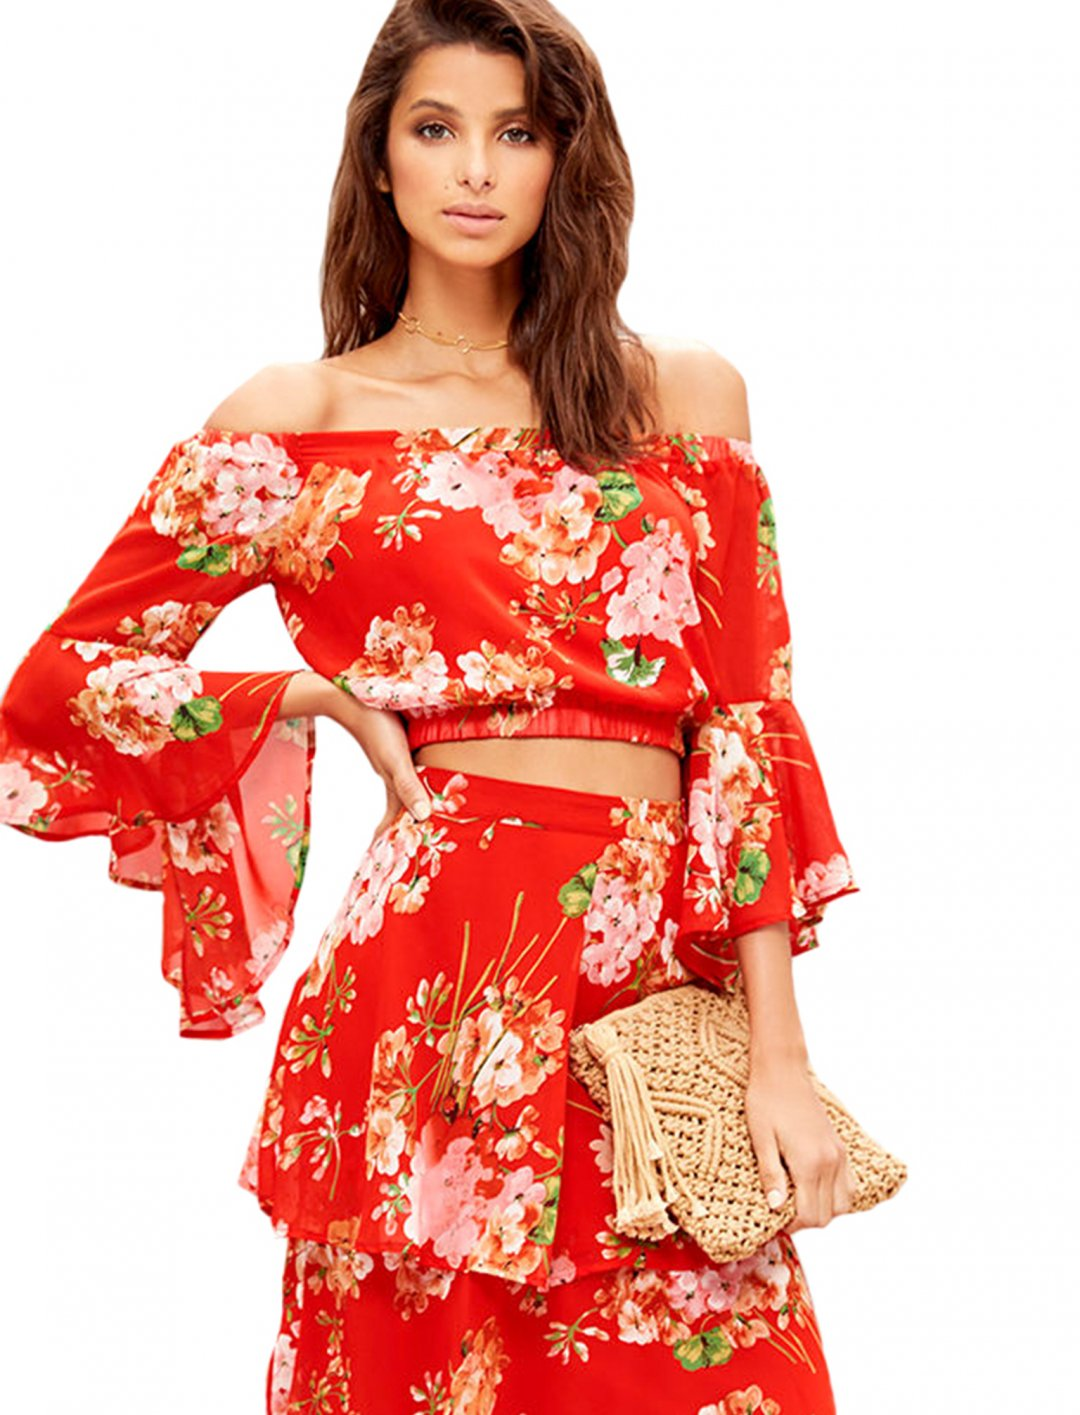 """Red Floral Print Top {""""id"""":5,""""product_section_id"""":1,""""name"""":""""Clothing"""",""""order"""":5} Lulus"""